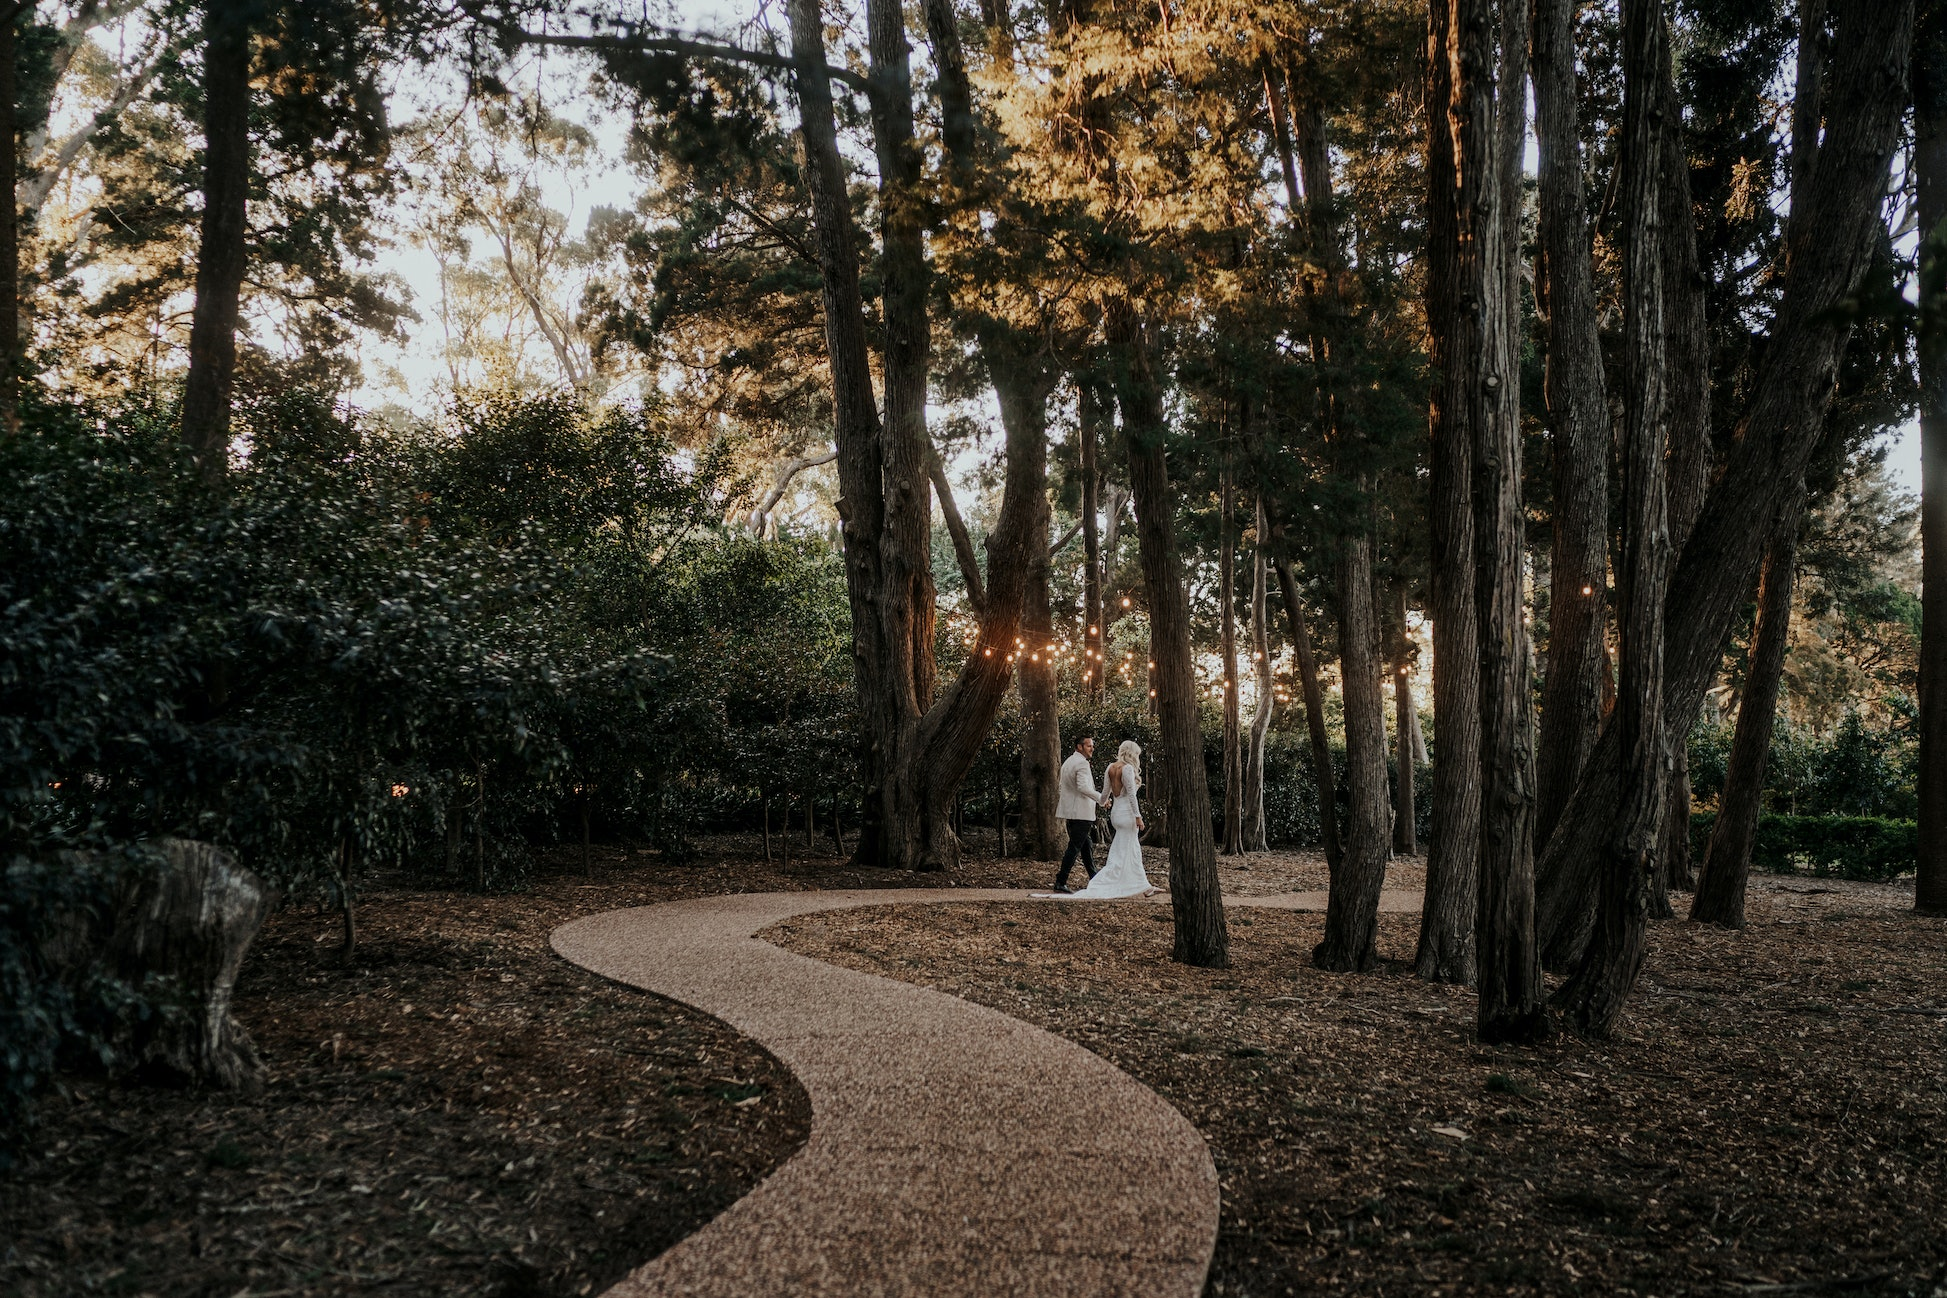 Long winding path through tall trees with couple walking in the distance